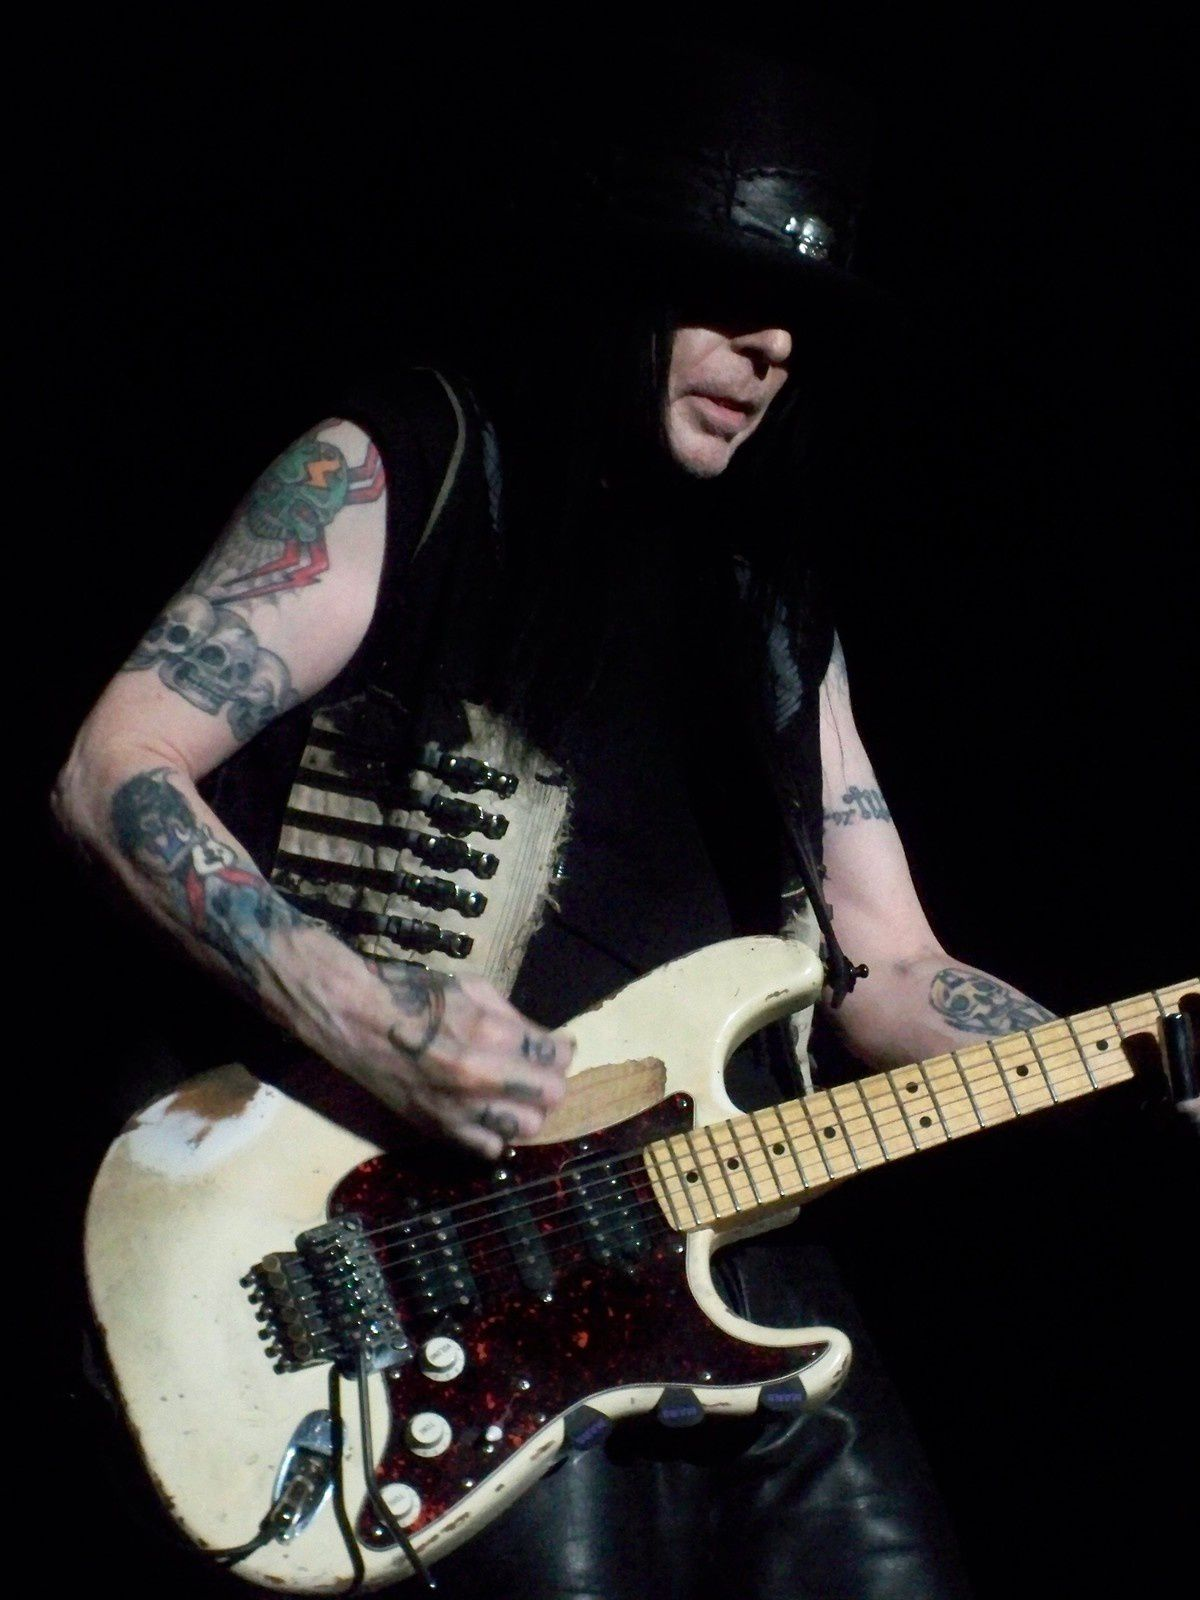 Mick Mars - January 1, 2008 - the legendary guitarist of Mötley Crüe